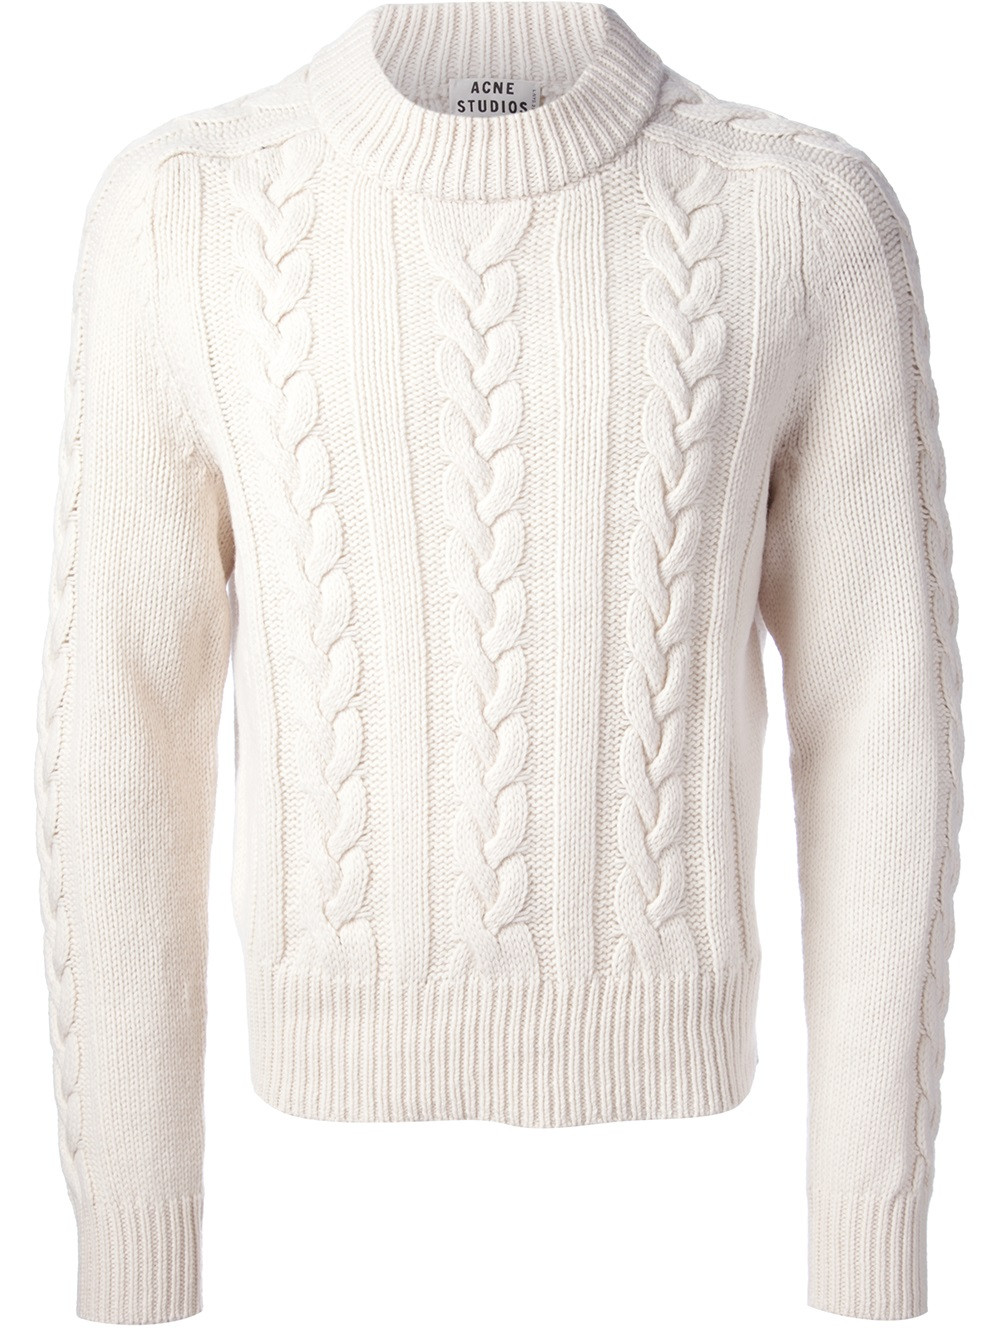 Mens Knit Sweater Fresh Lyst Acne Studios Brent Cable Knit Sweater In White for Men Of Perfect 42 Pictures Mens Knit Sweater